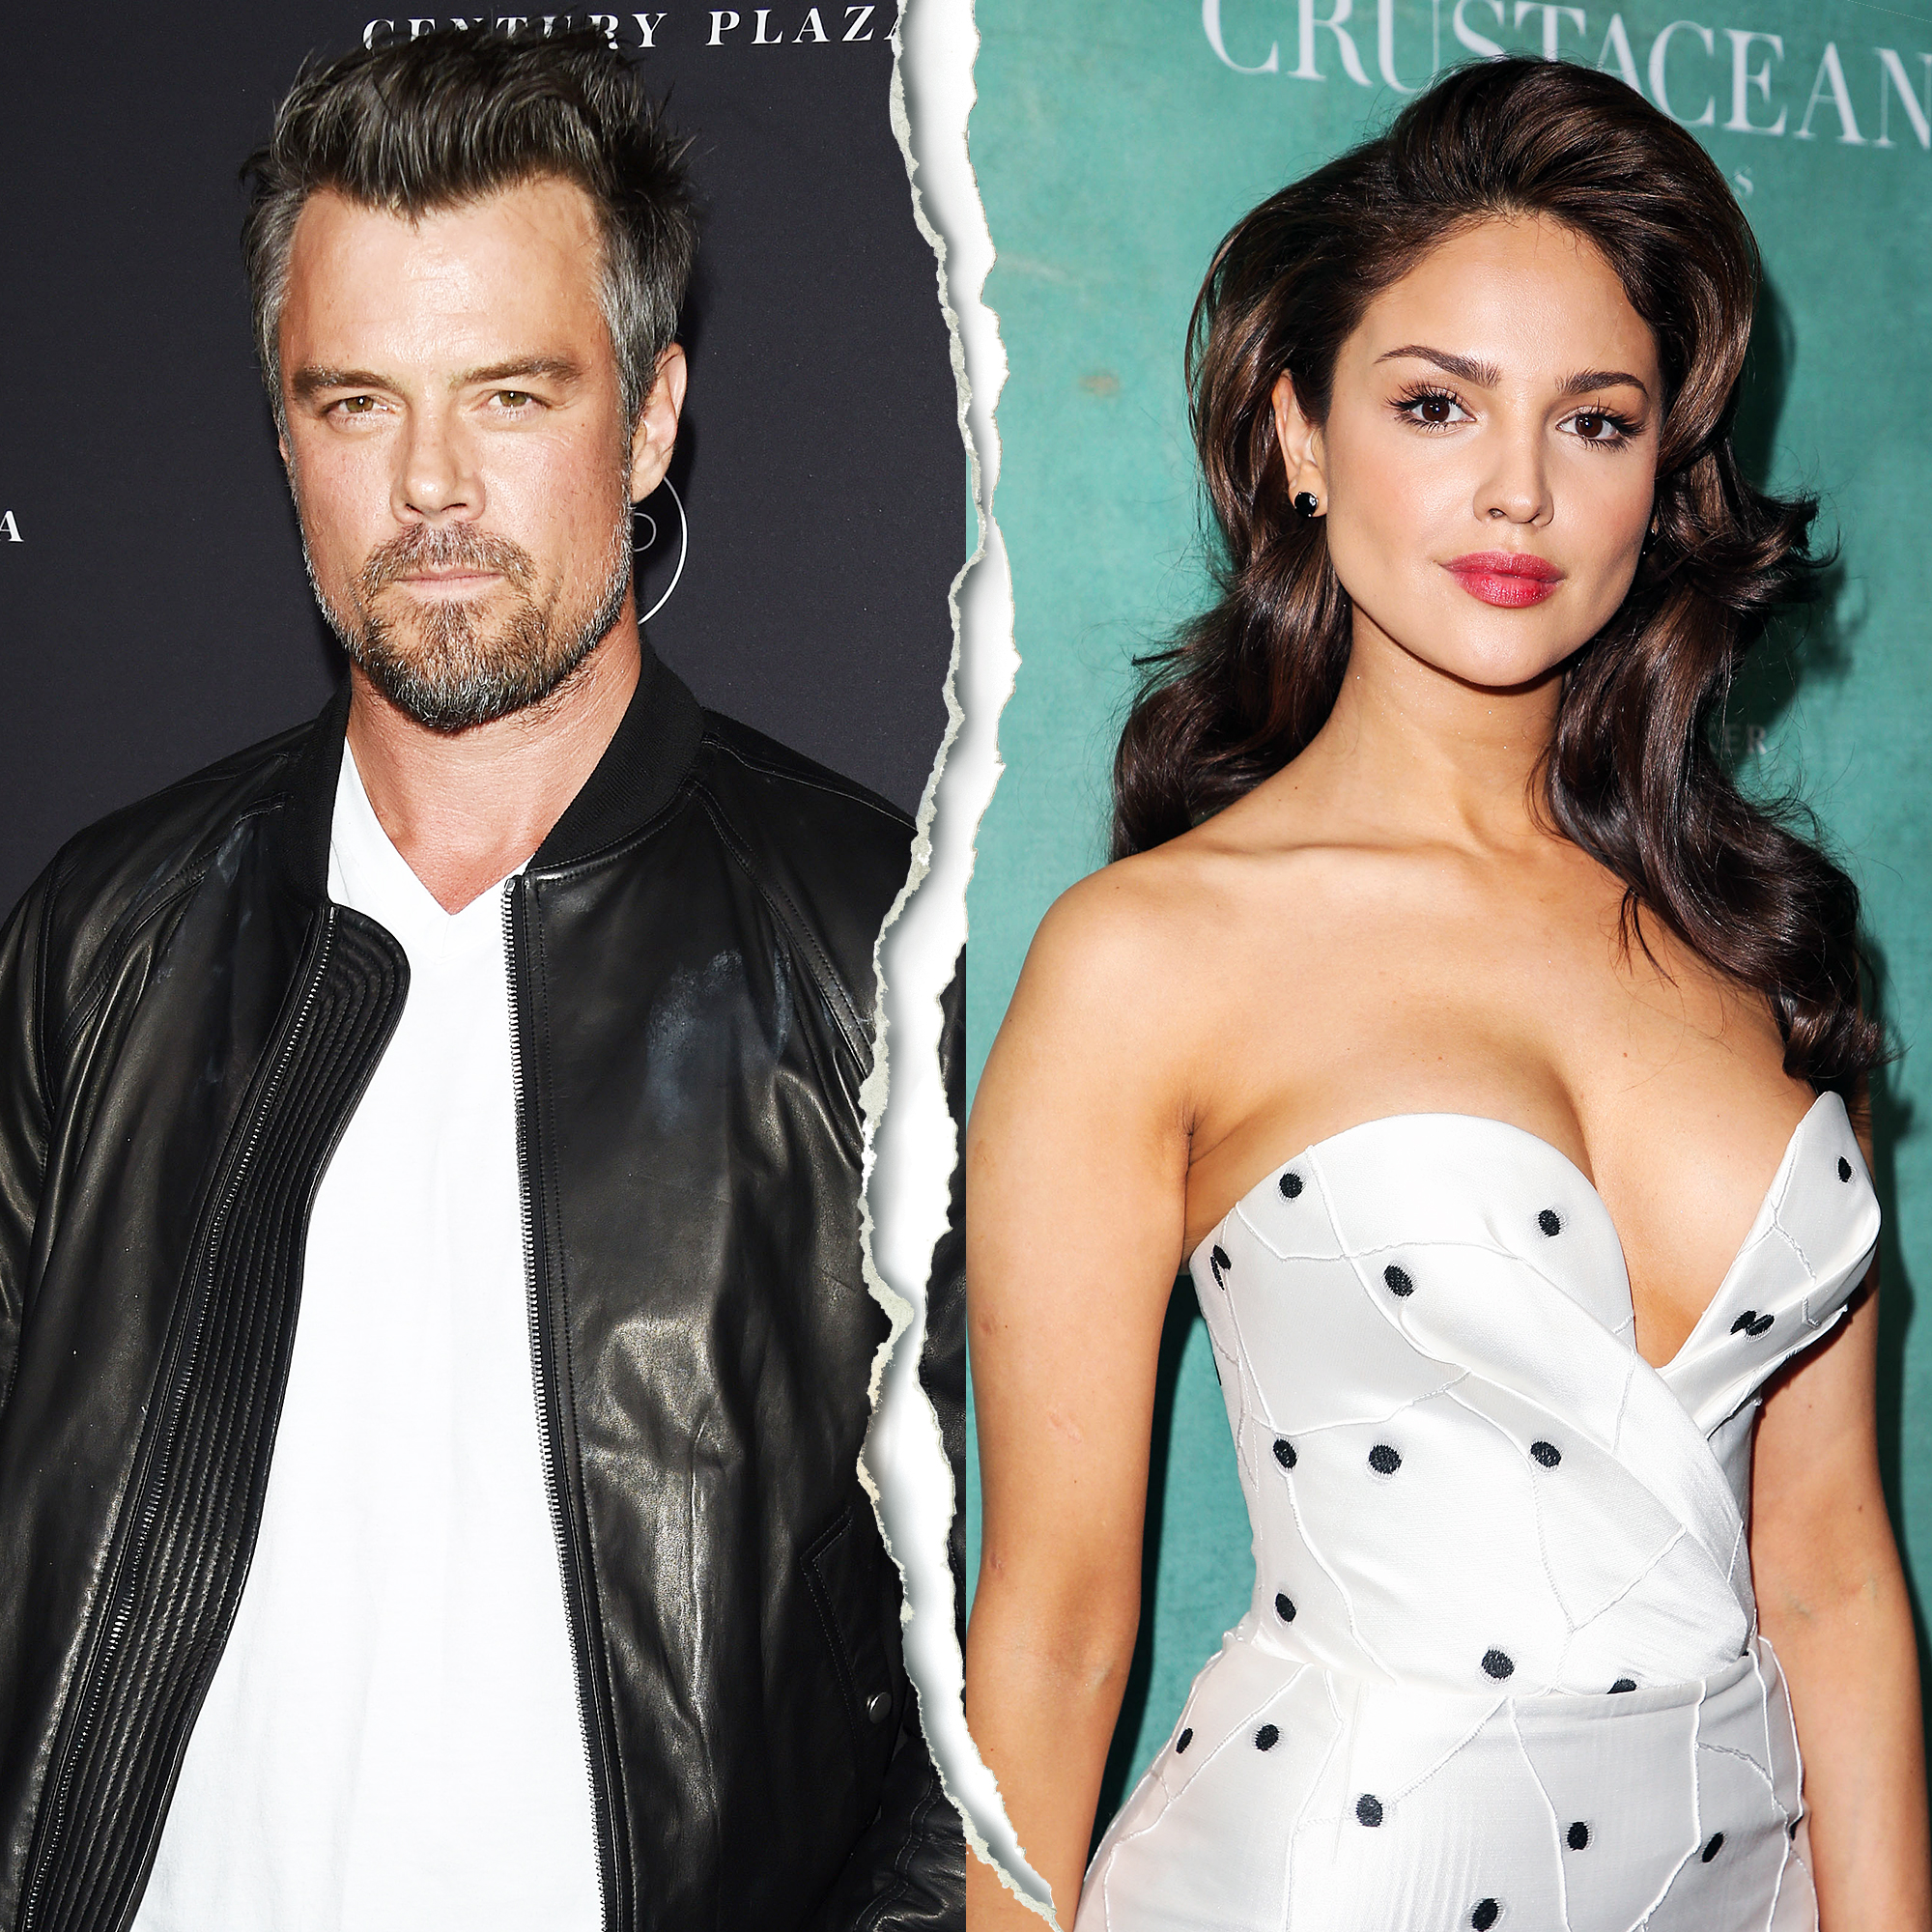 Who is josh duhamel dating now